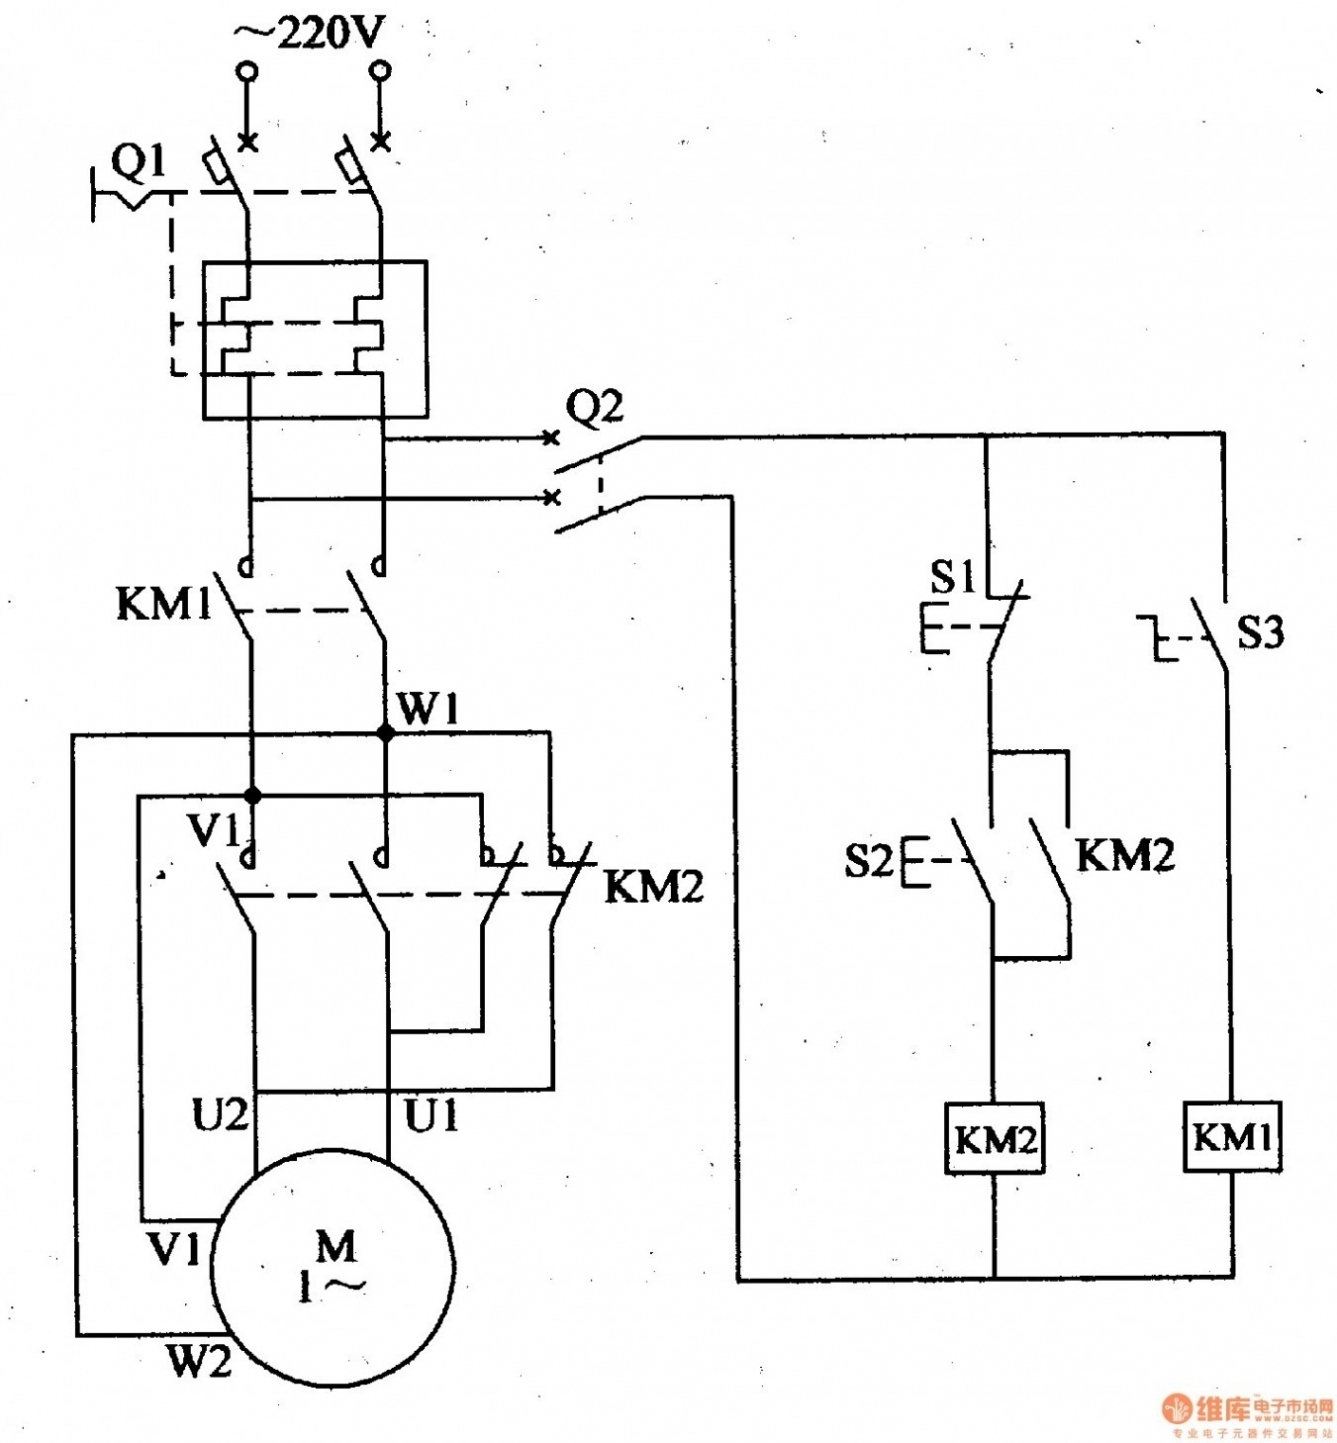 Marathon Motor Schematic: 3 Phase 6 Lead Motor Wiring Diagram